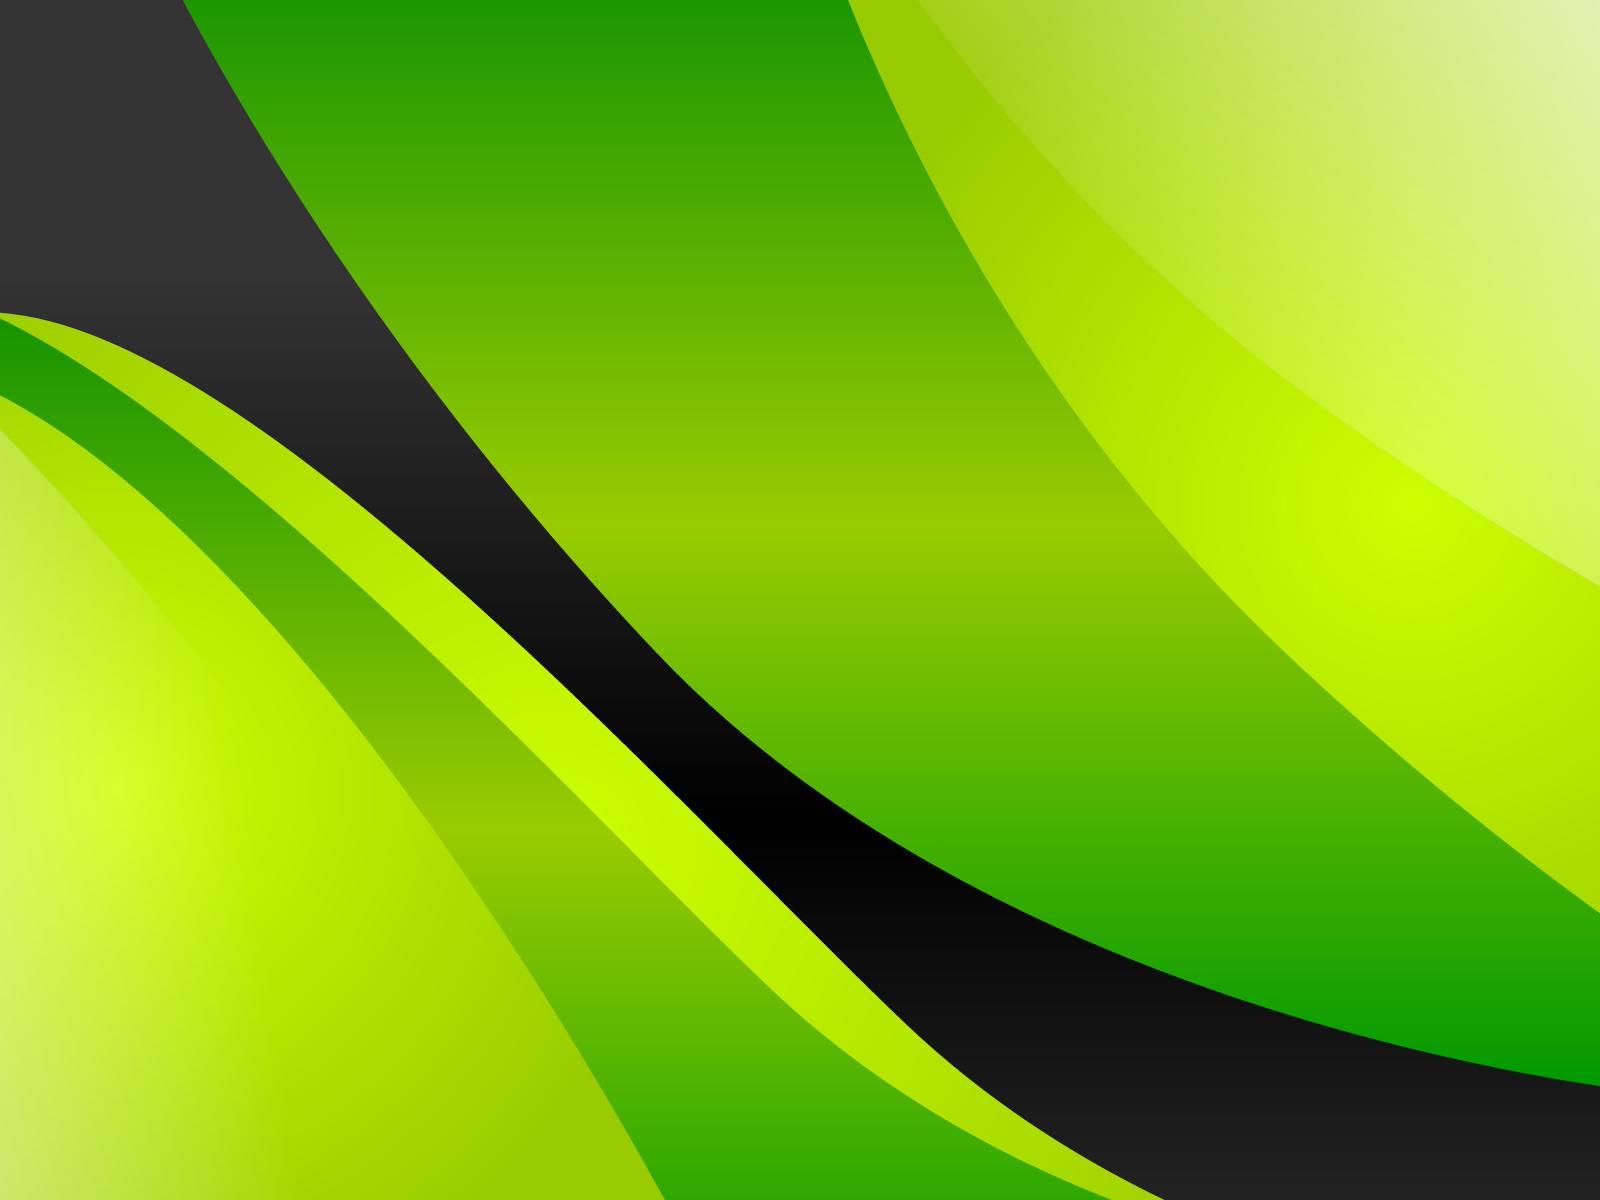 Black and White Wallpapers Green Yellow Abstract Wallpaper 1600x1200